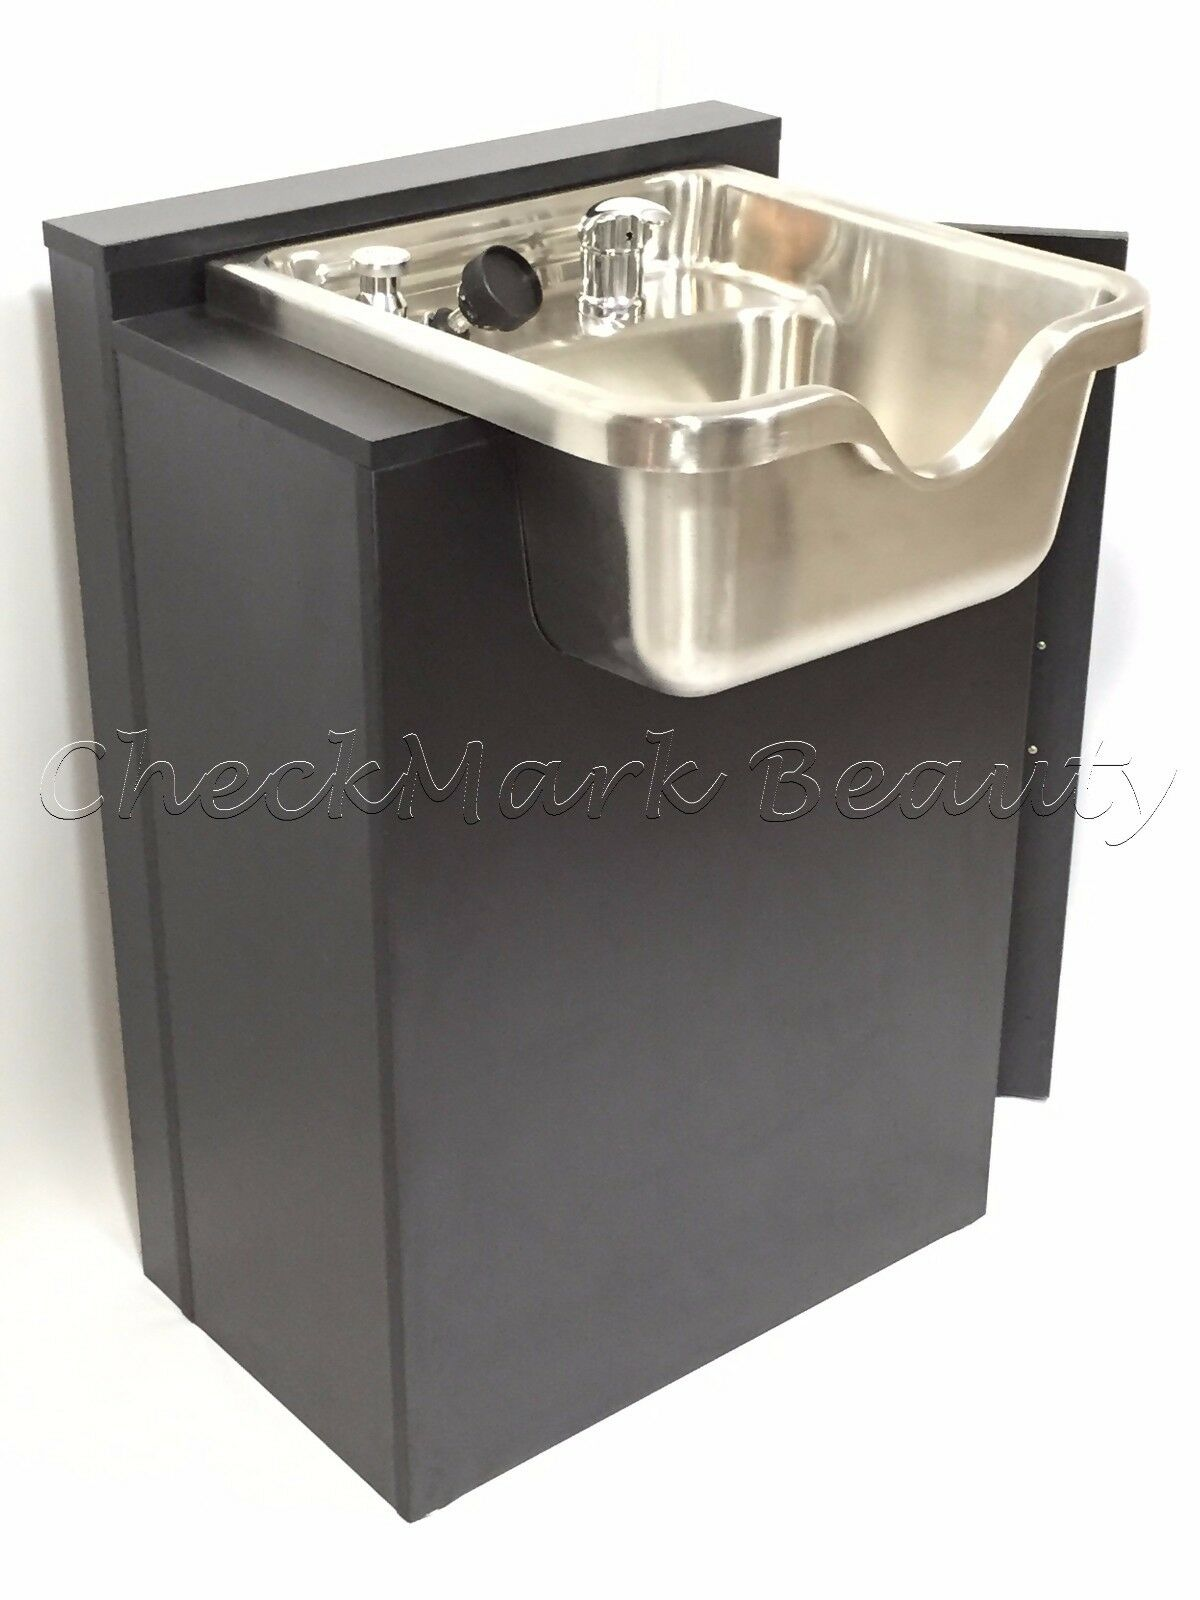 Stainless Steel Shampoo Bowl Sink Cabinet Salon Equipment Tlc-1167 ...